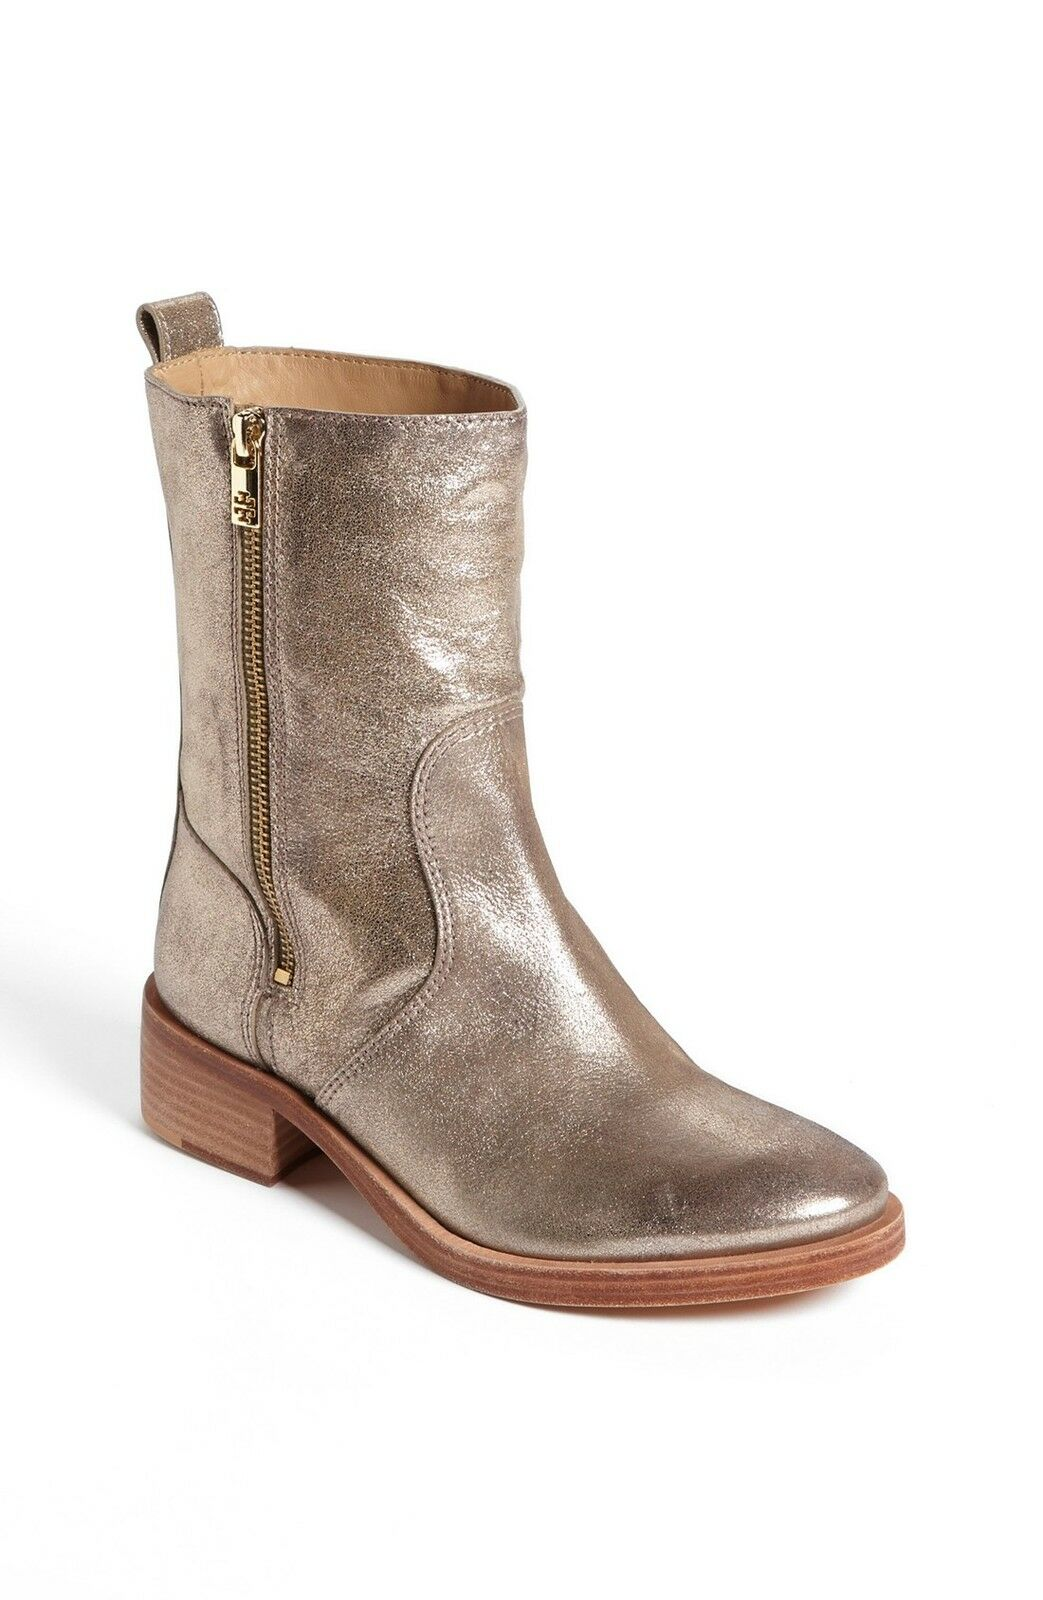 NEW $395+ Tory Burch Gold Metallic Leather HALLE Bootie Mid Boot Shoe Sz 6